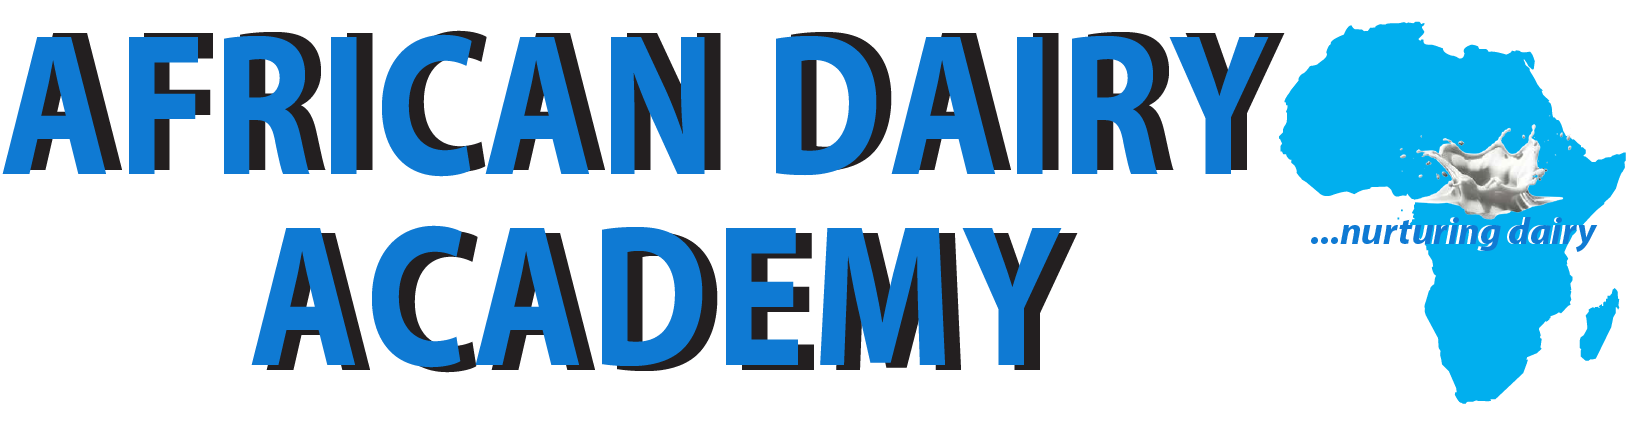 African Dairy Academy